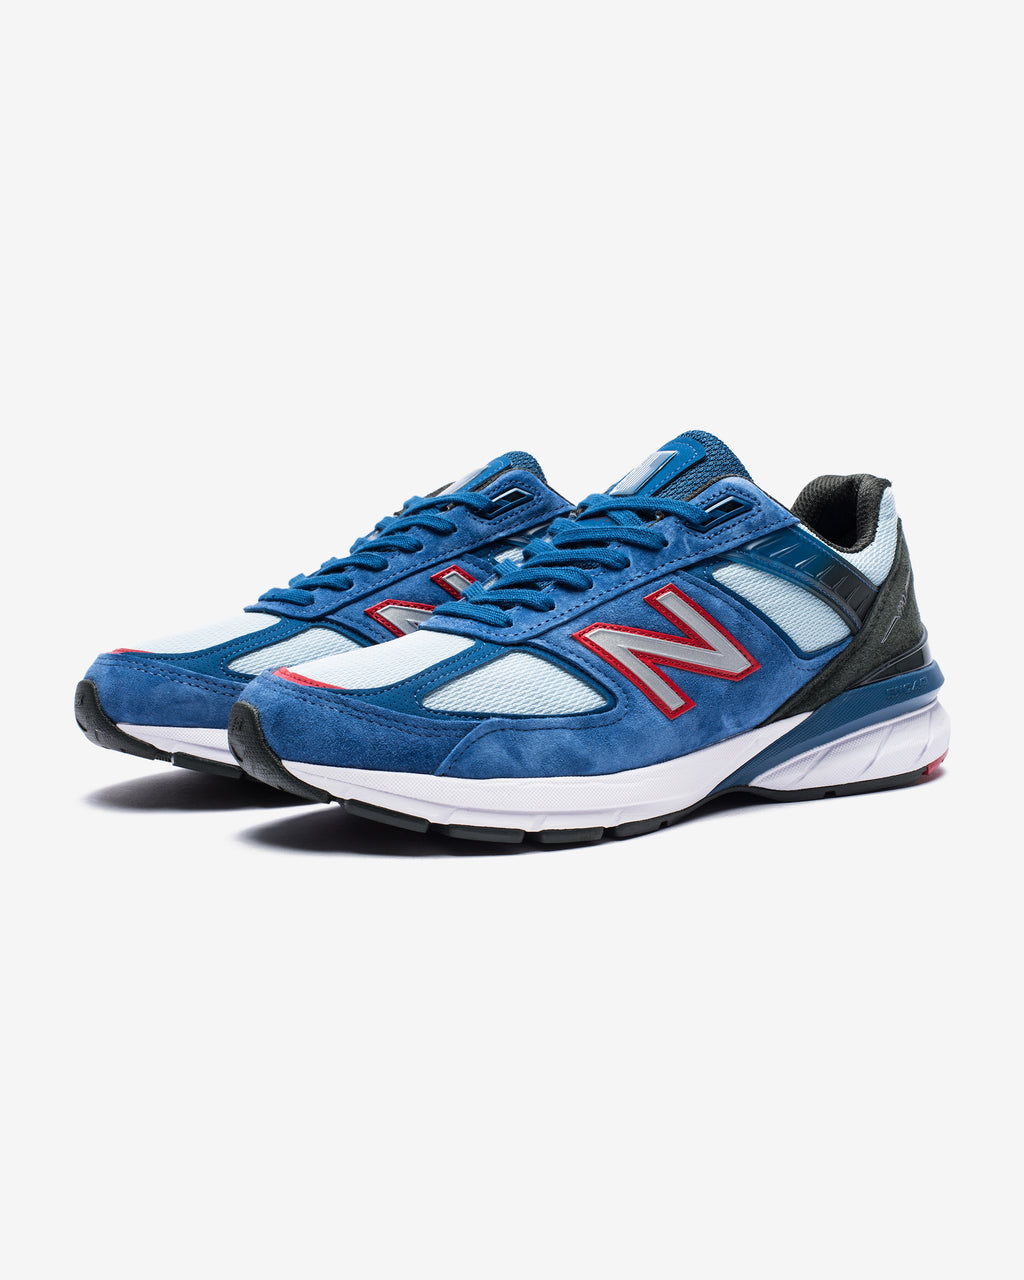 "990 V5 ""MADE IN USA"" - ANDROMEDABLUE/TEAMRED/BLACK"